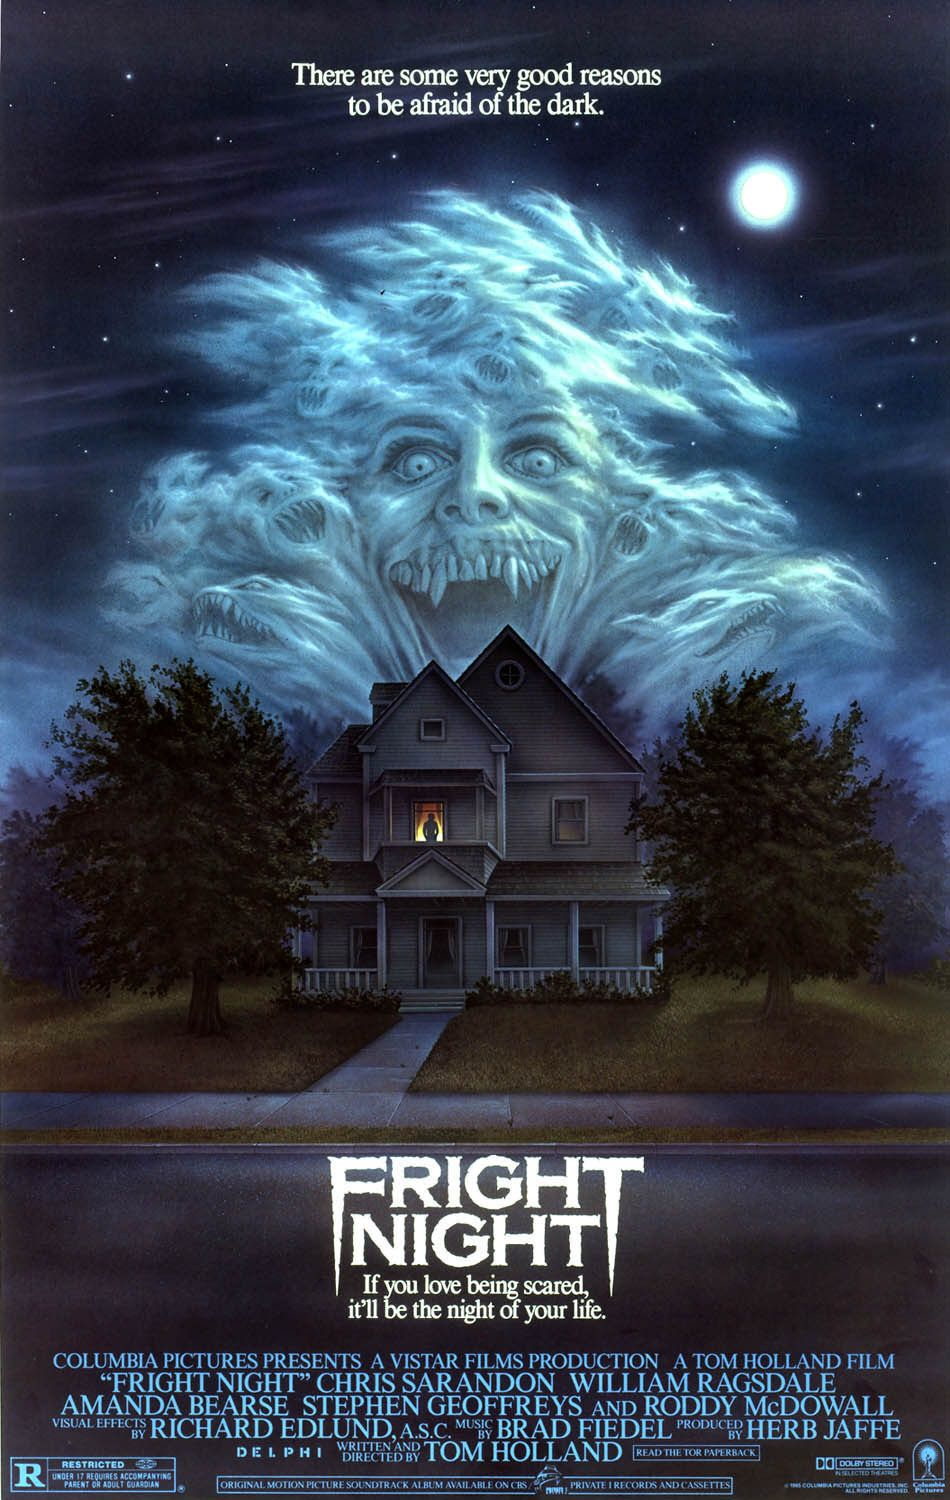 fright night movie poster - Retro Gallery Archive (Full Size)